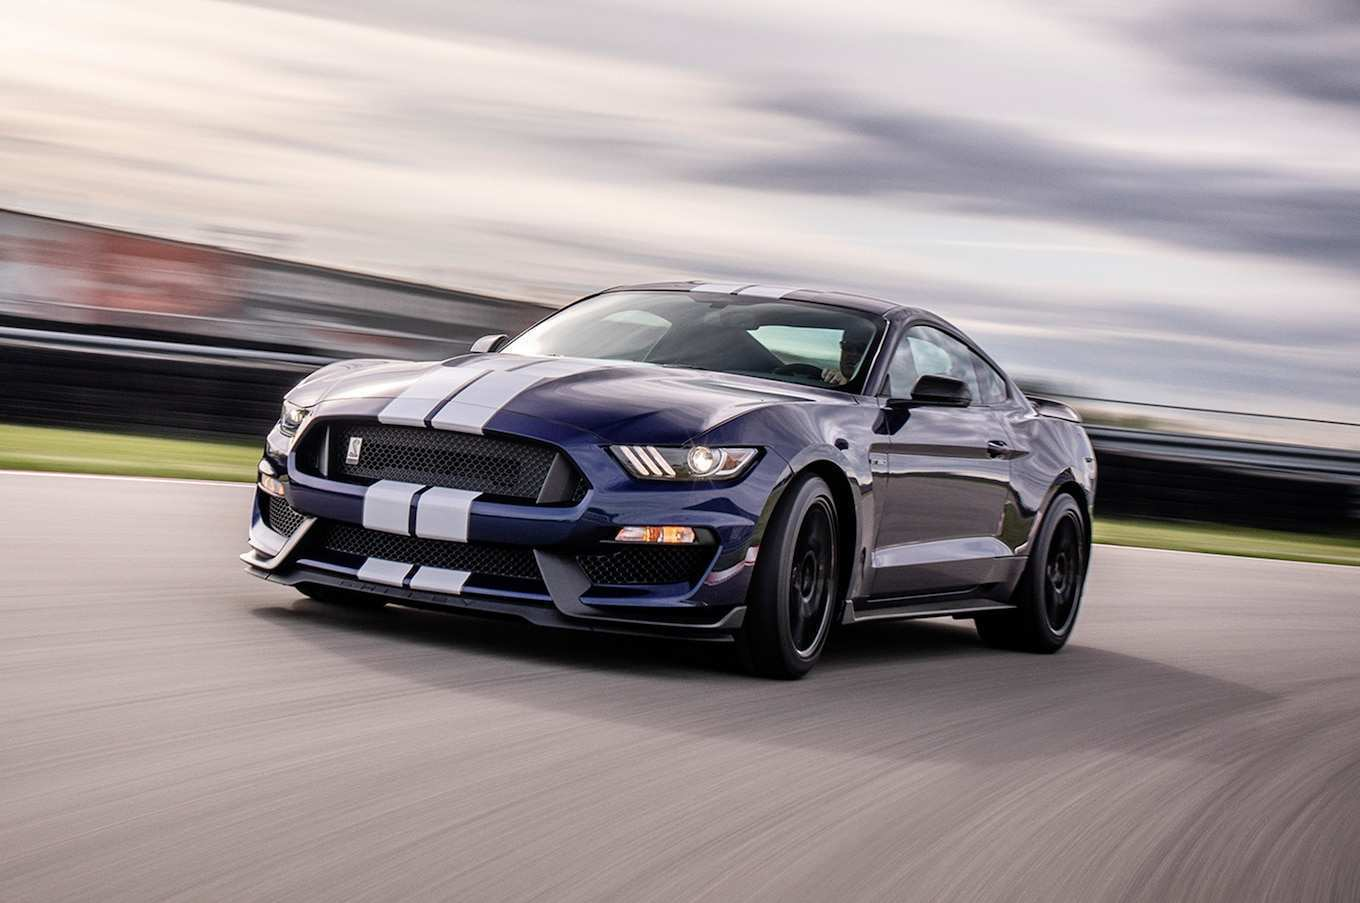 96 New 2019 Mustang Shelby Gt350 Images